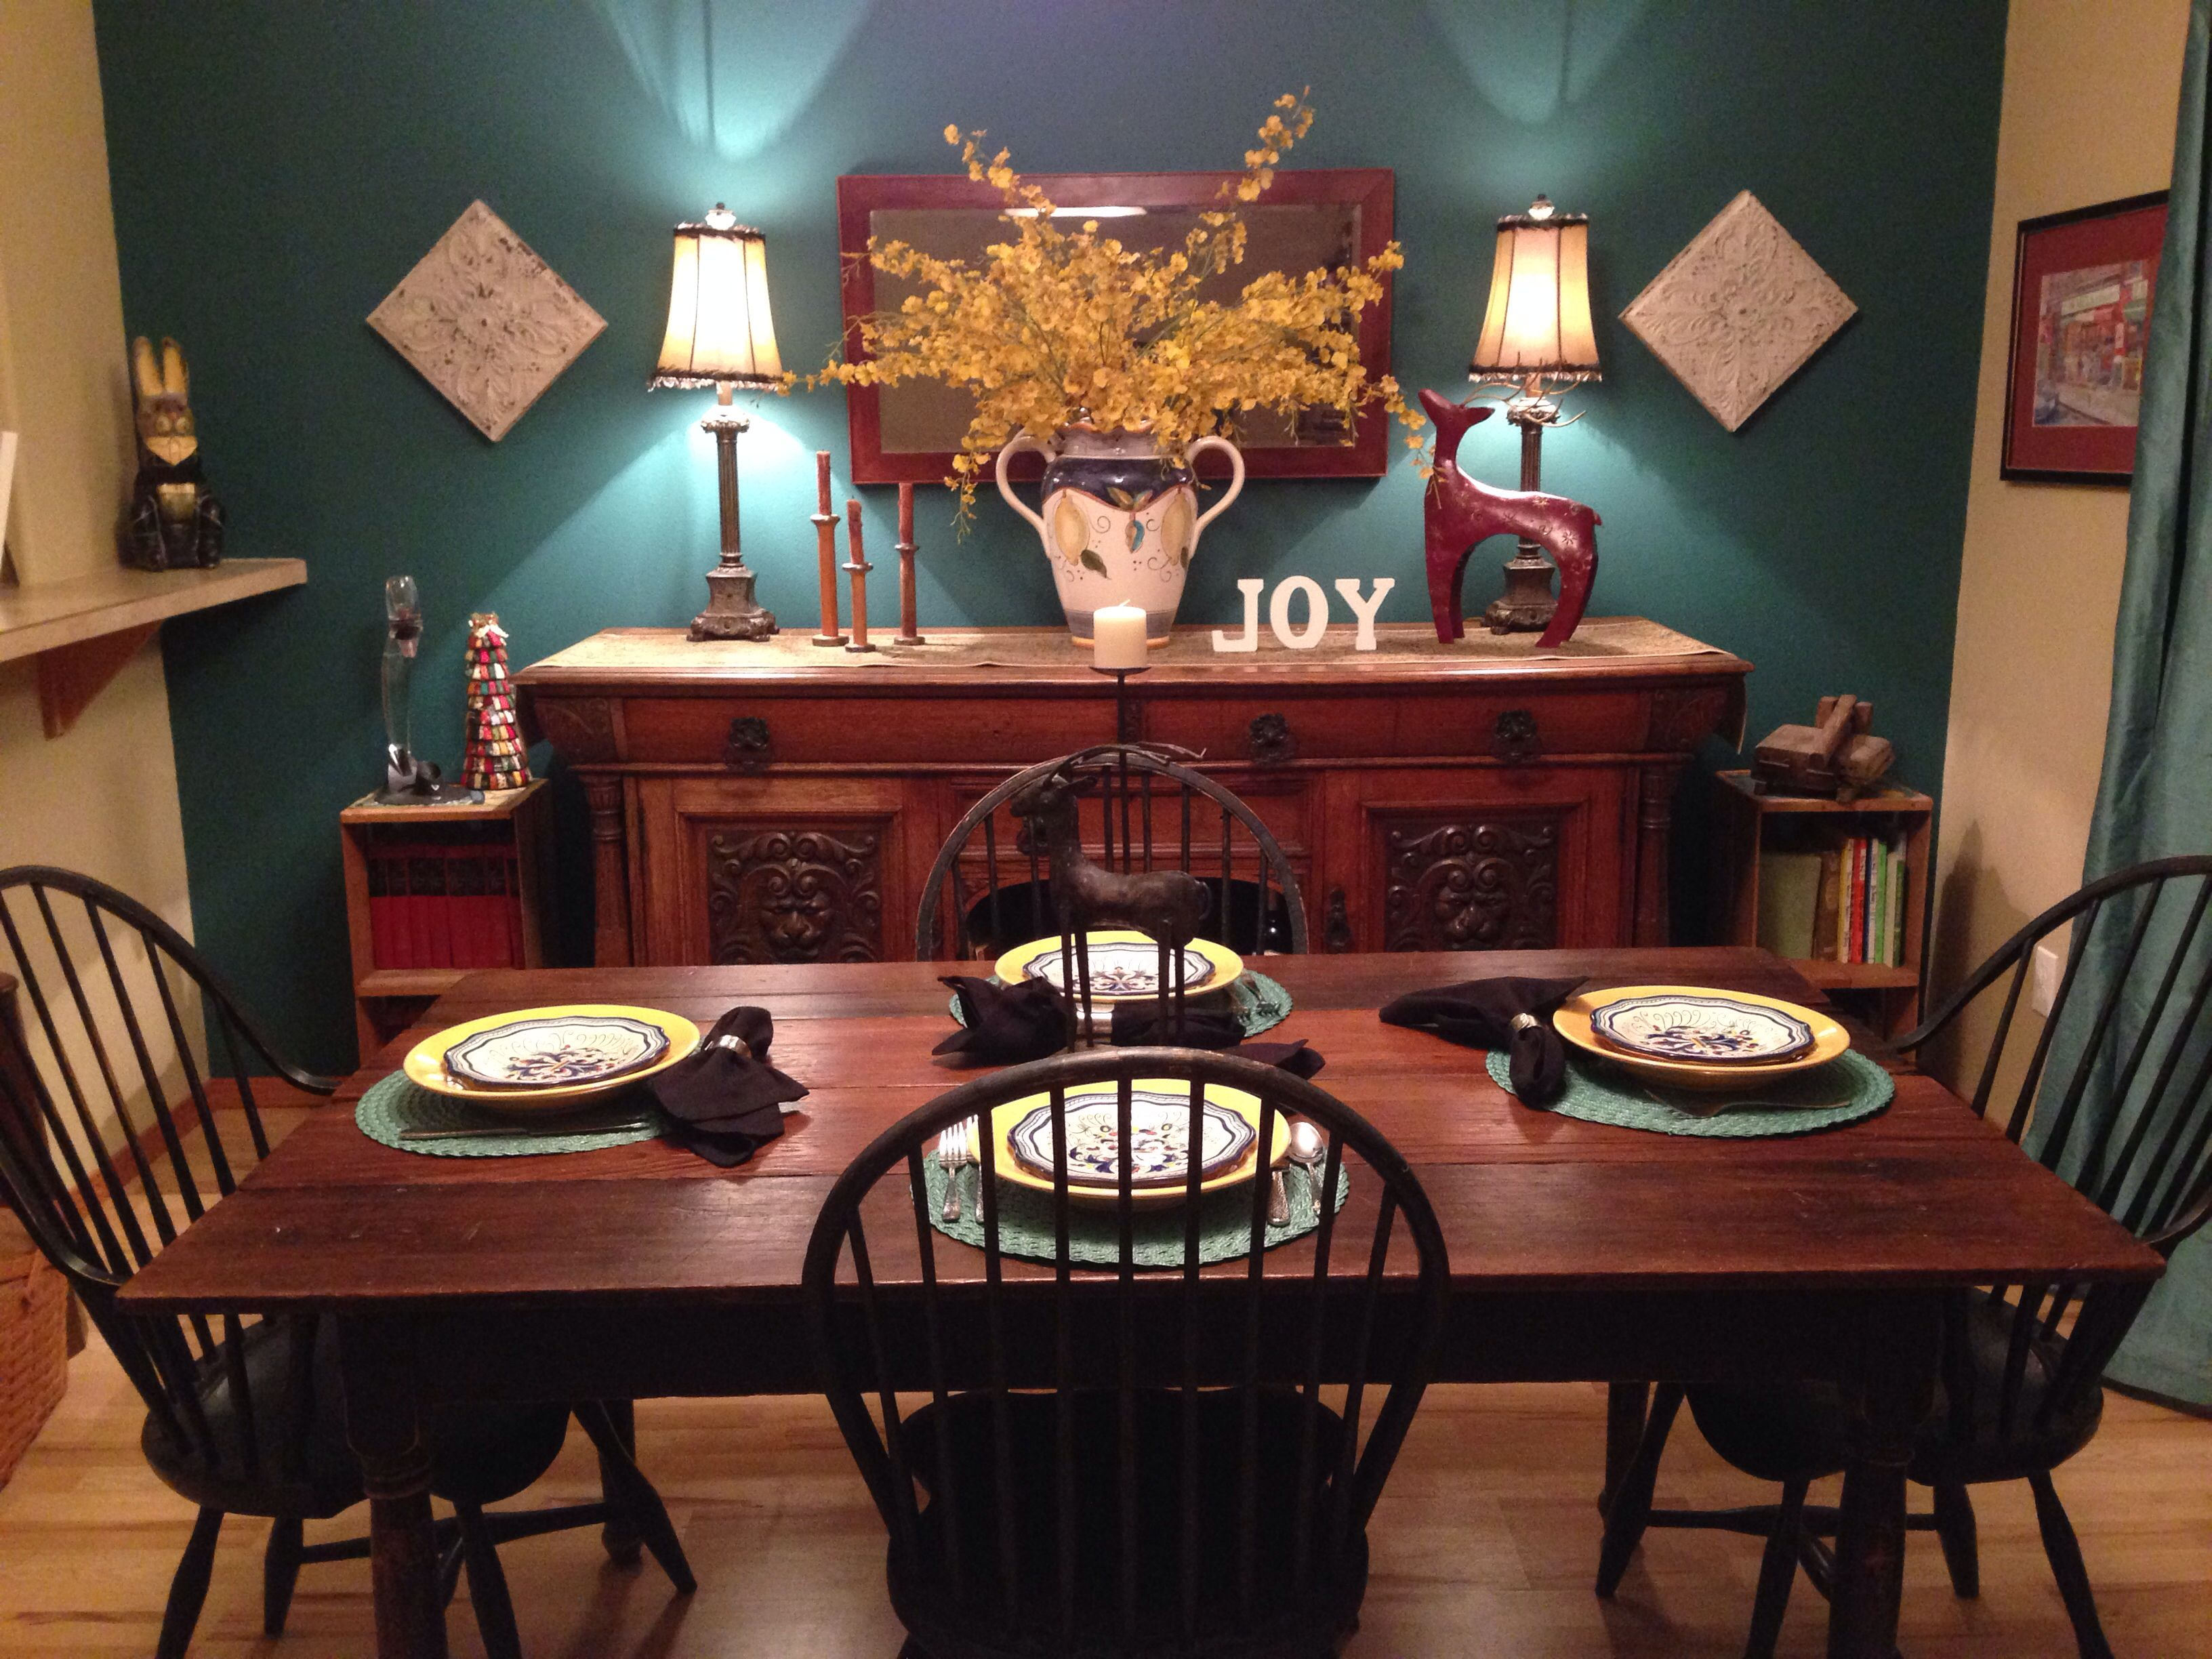 This Teal Accent Wall With Drapes Mixed Chocolate Wood Furniture Makes Dinner